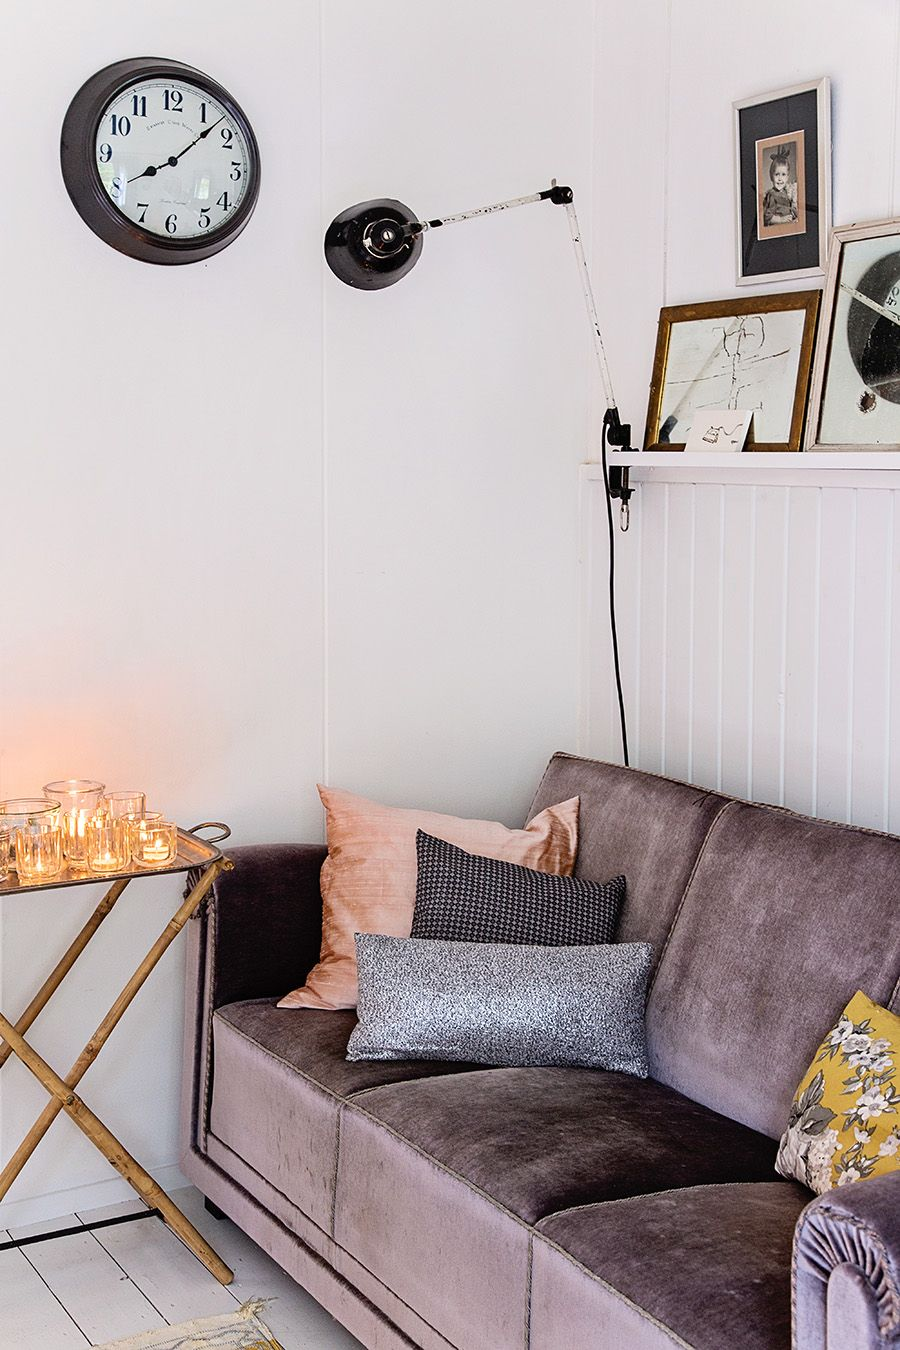 Love this, feels warm and cosy. Yet, pared back and simple